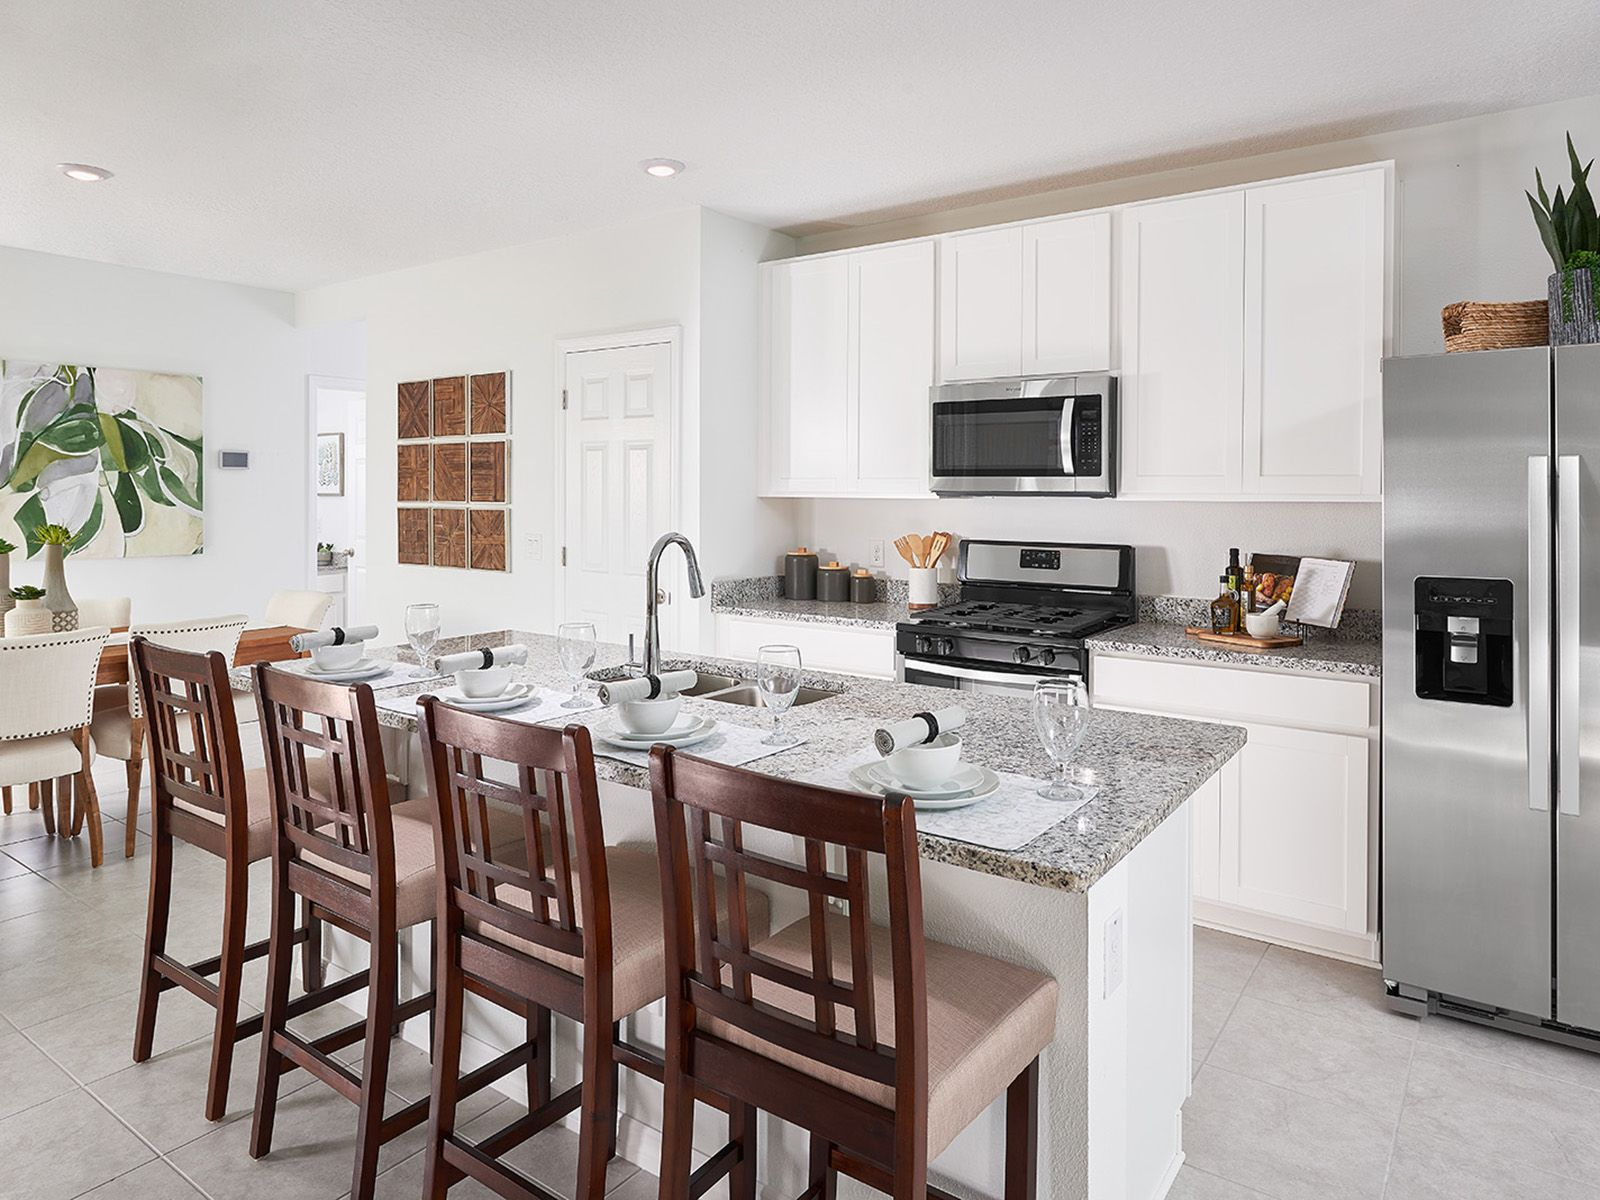 Kitchen featured in the Everglade By Meritage Homes in Orlando, FL